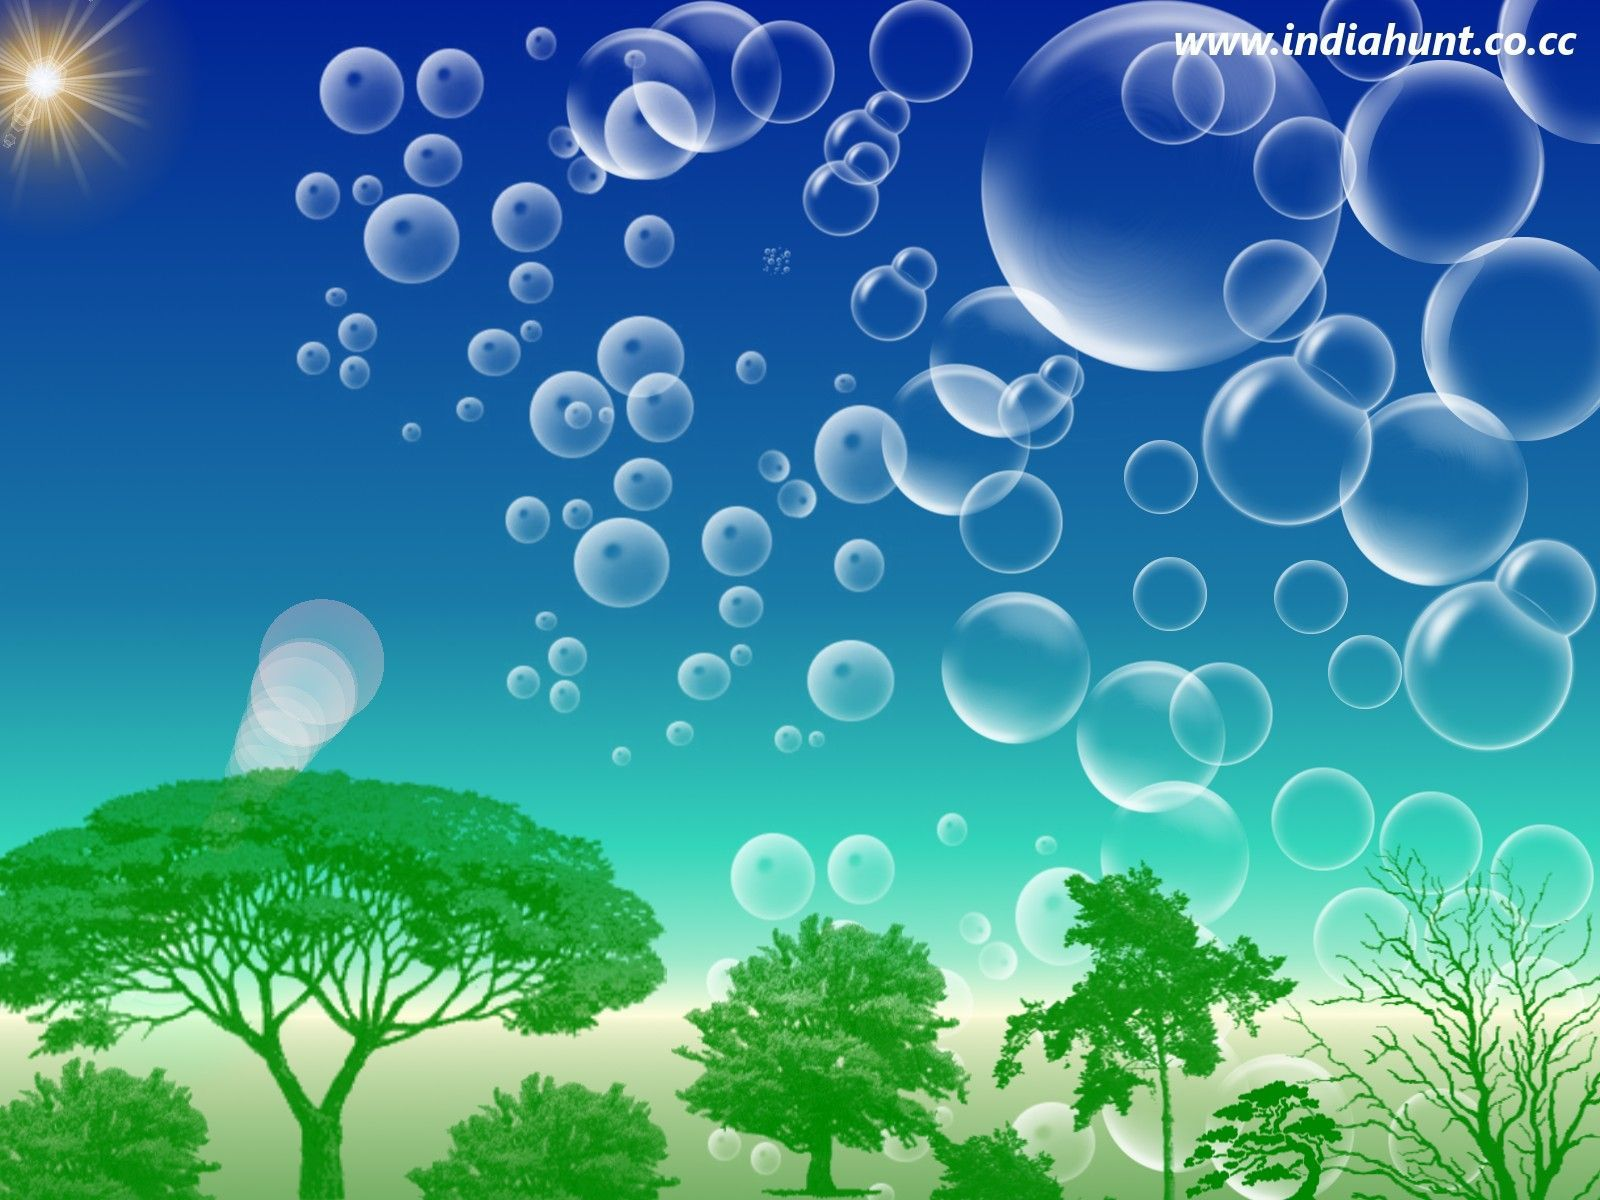 Animated Wallpapers For Desktop Free Download Windows 7